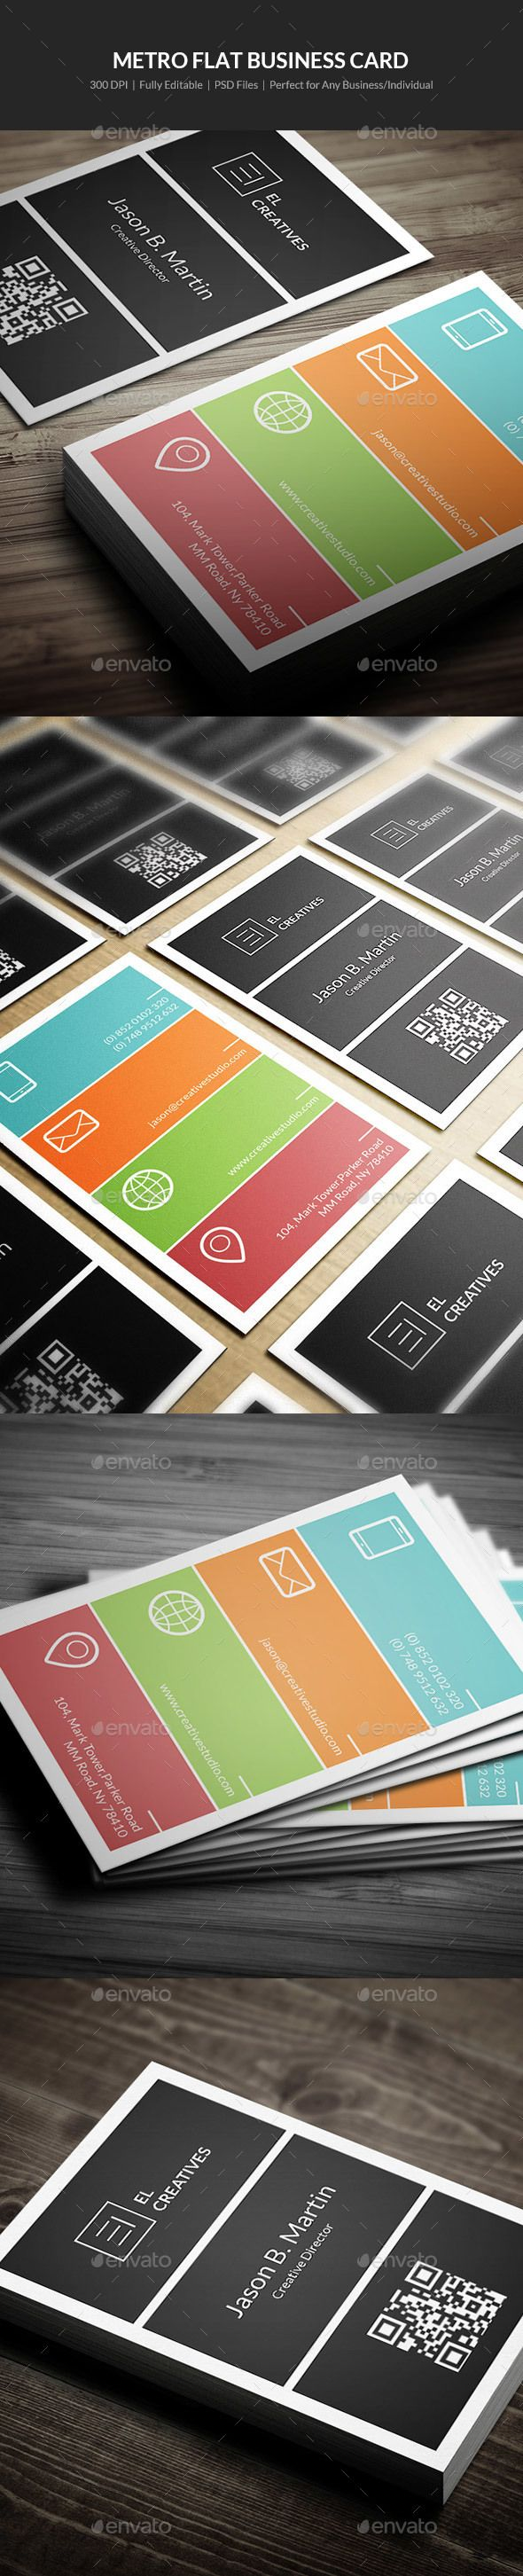 12 best Business cards images on Pinterest | Carte de visite ...